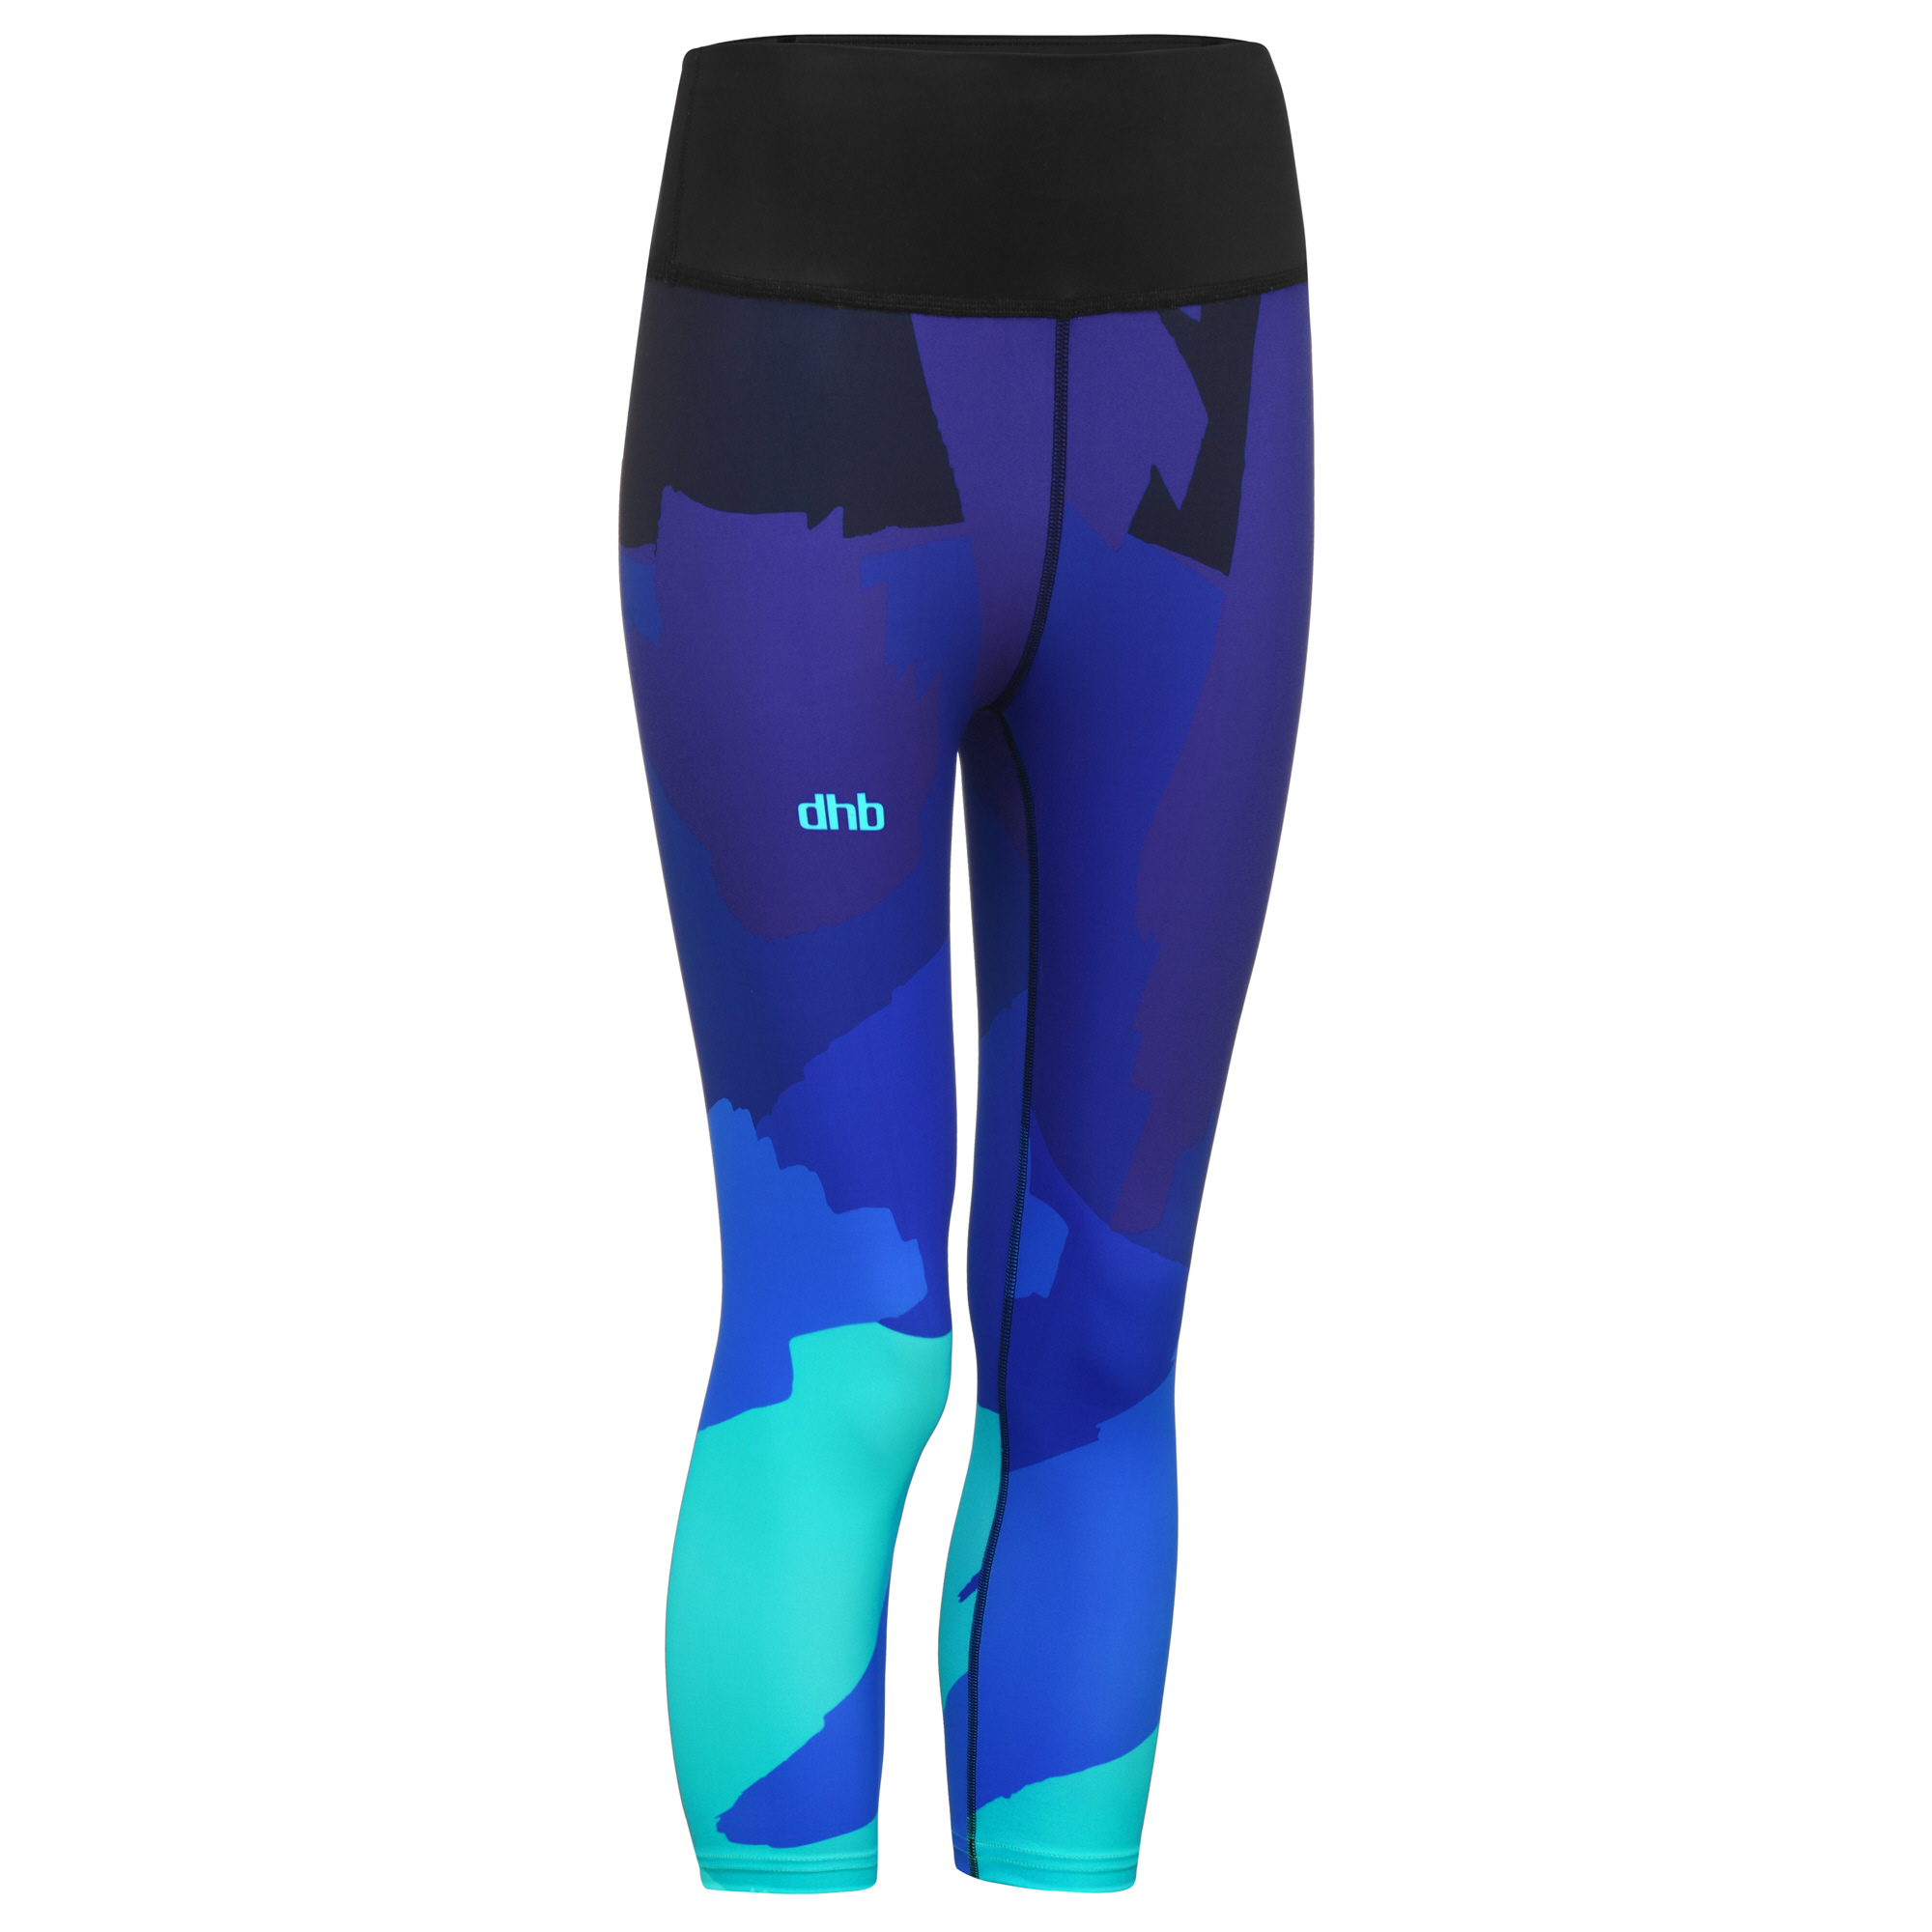 lower price with good selling the sale of shoes Collants | dhb | Women's Printed Run Capri - Seafoam | Wiggle France